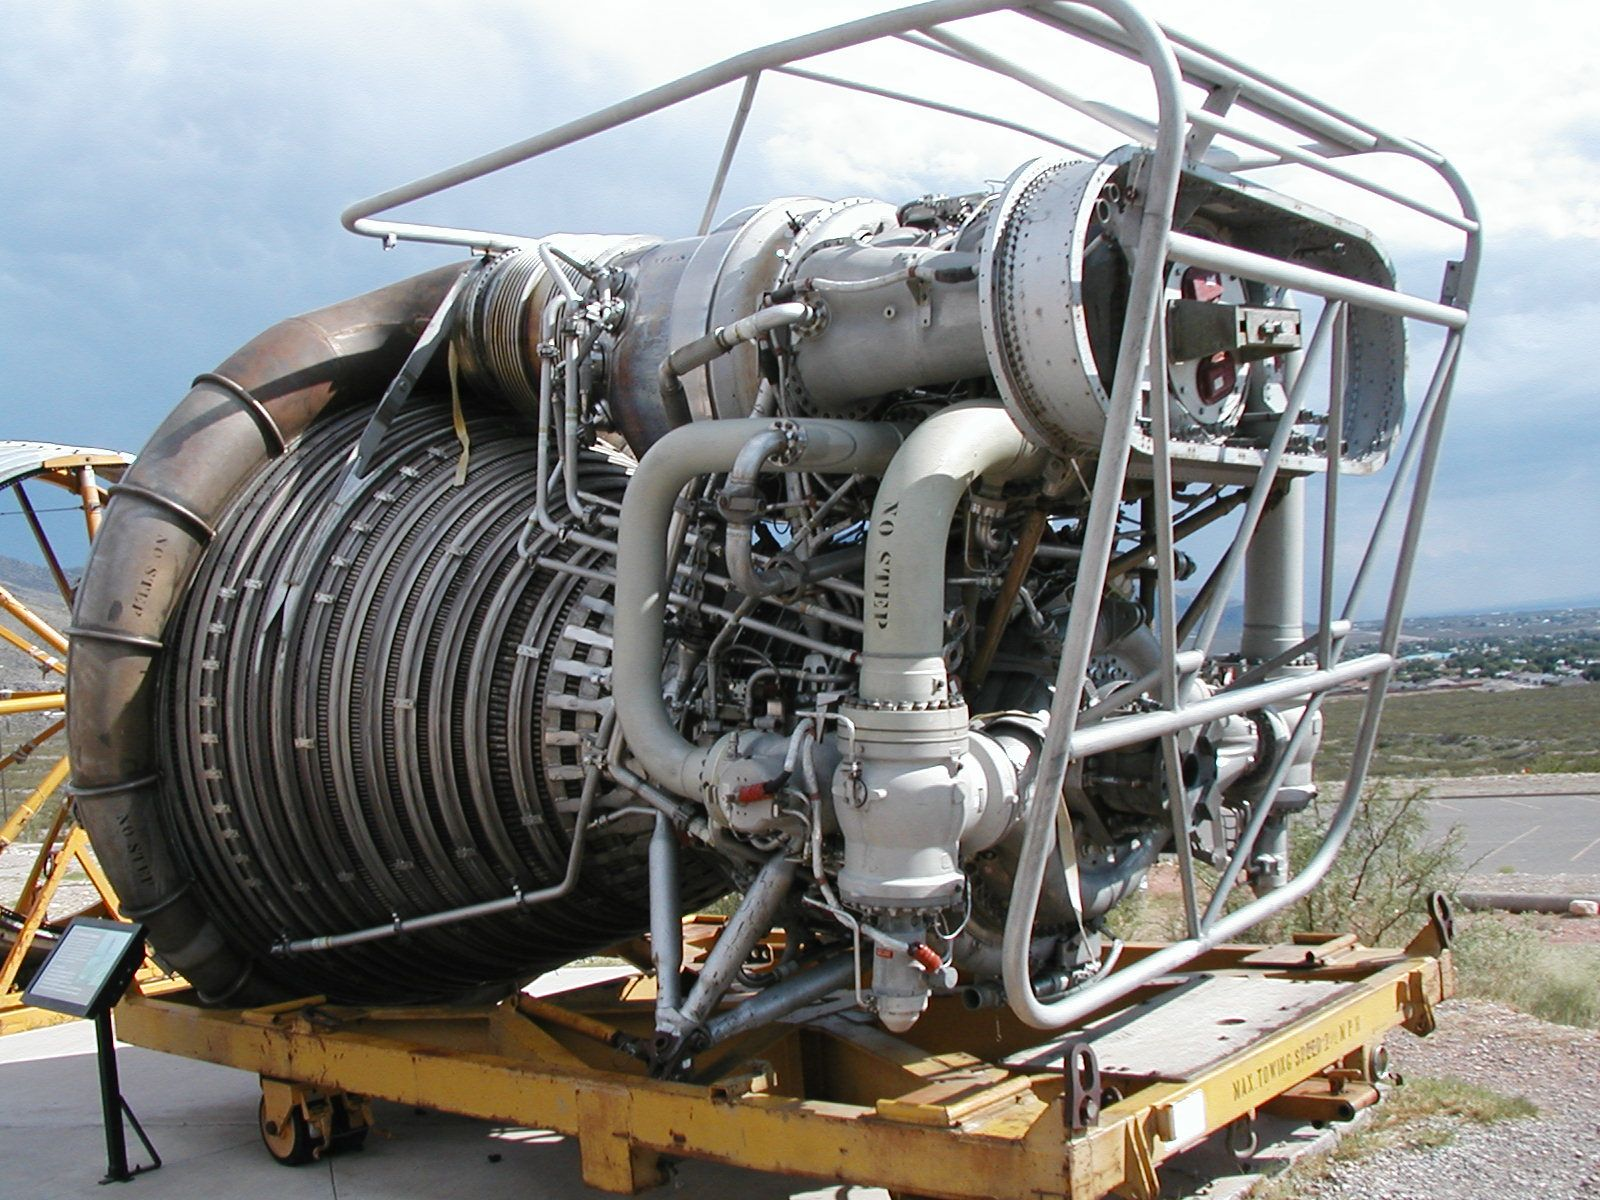 Pin By Larry Ennis On Space Exploration Pinterest Rocket Engine Saturn V F1 Diagram Apollo Program Engineers Suits